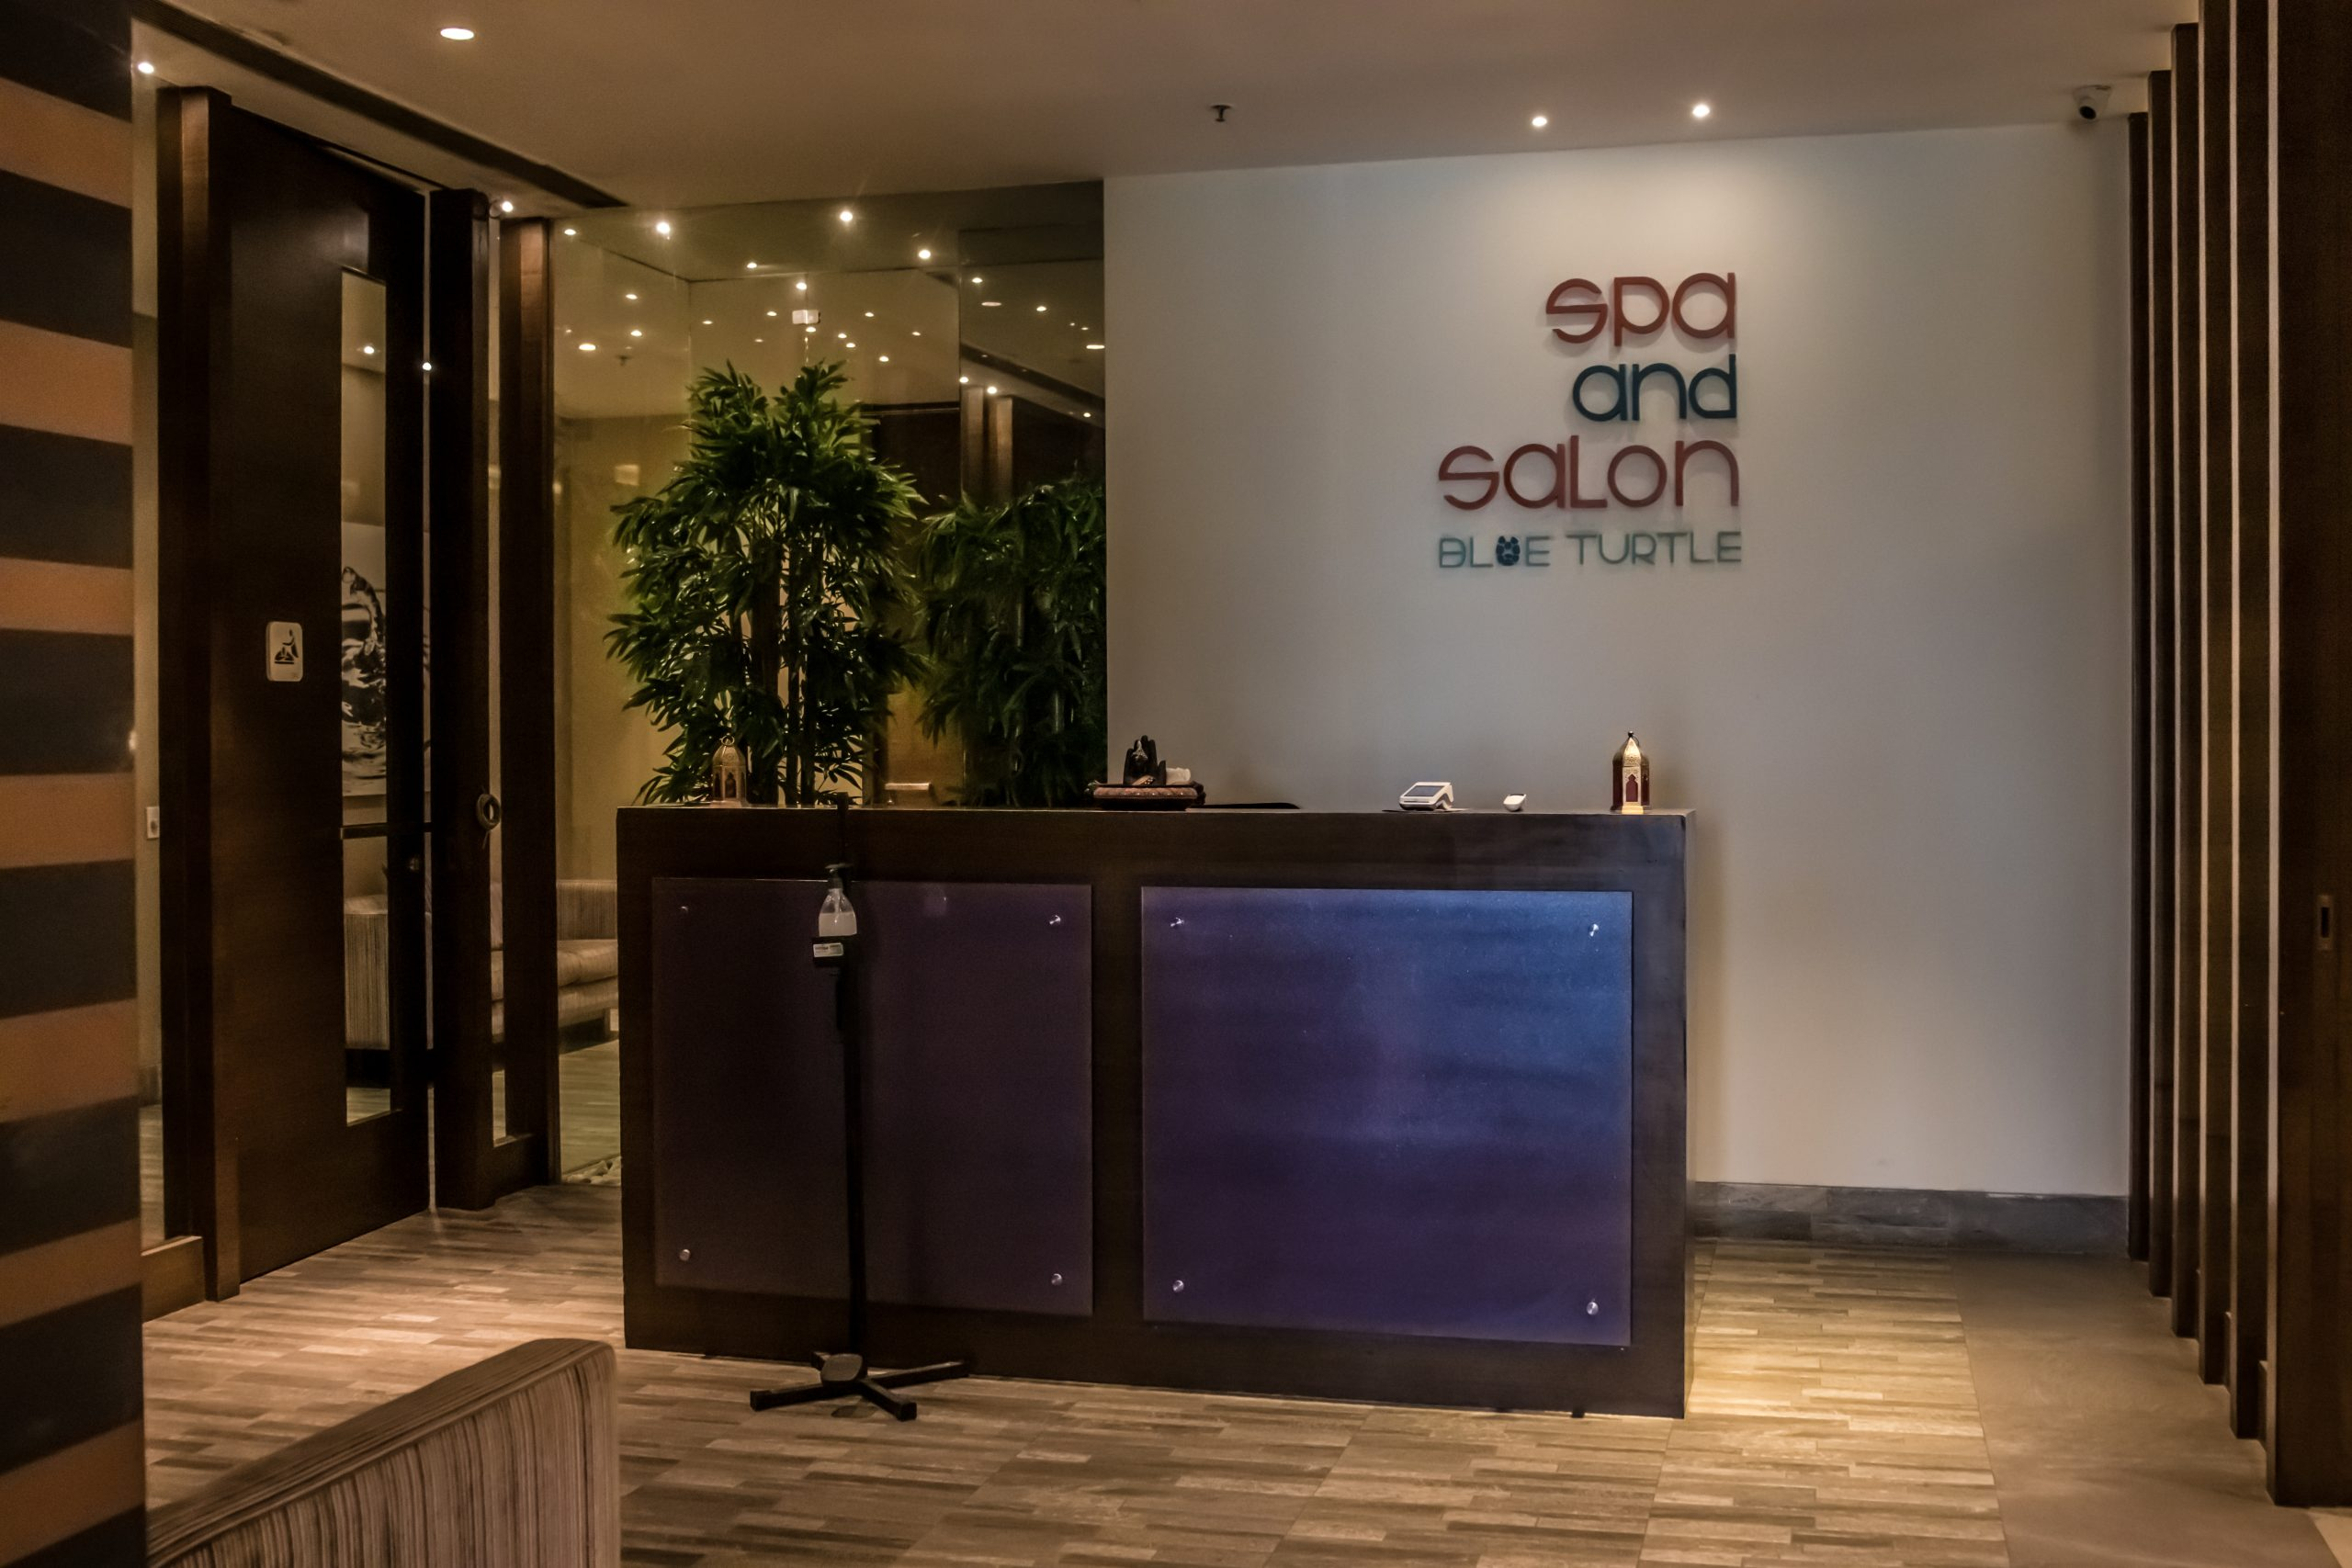 Reception of a salon and spa